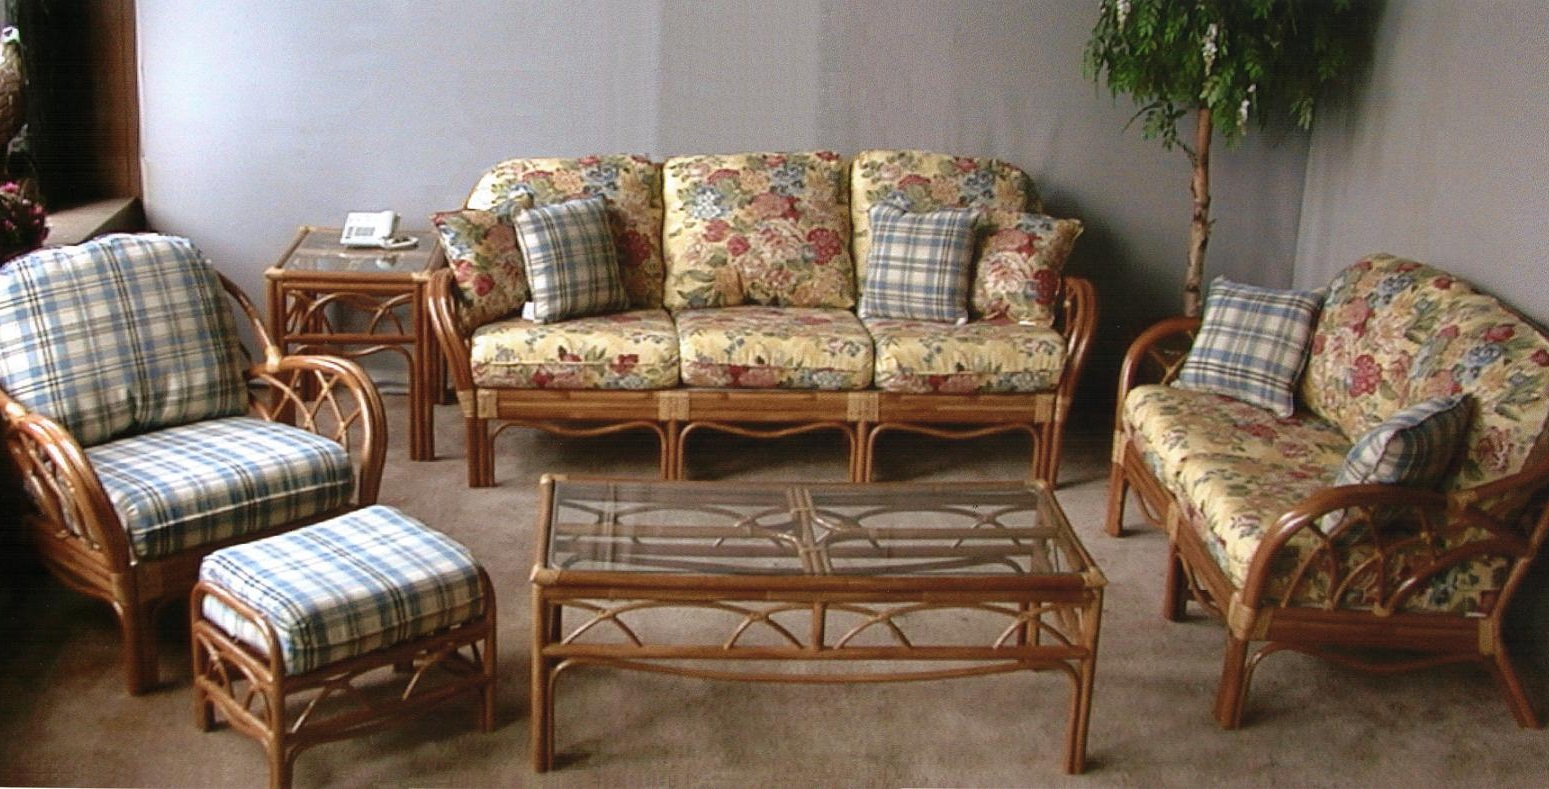 Lovely Rattan And Wicker Furniture #10: Aruba Rattan 6 Piece Seating Set